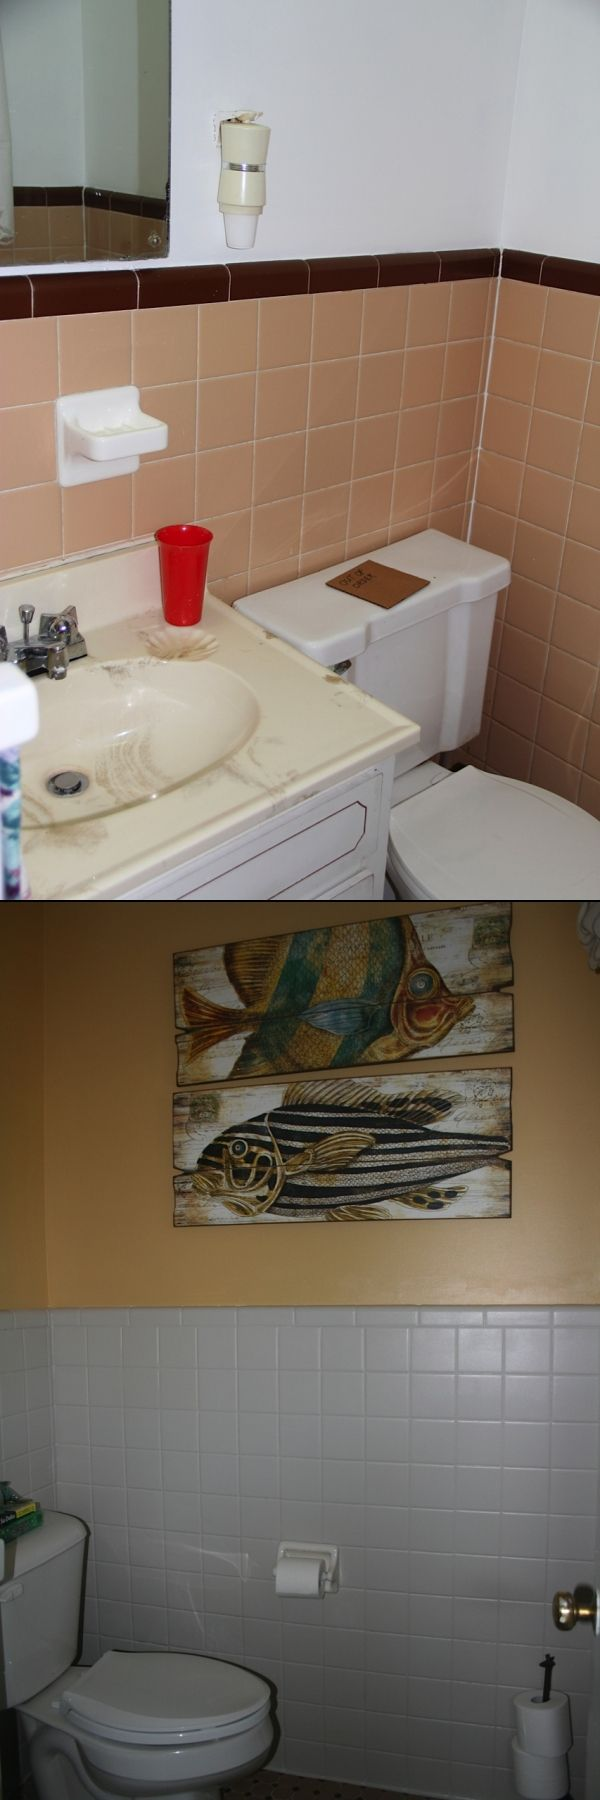 Before And After Of 1950s Bathroom Painted Tile Love It 1950s Fixer Up Brickhousebluedoor